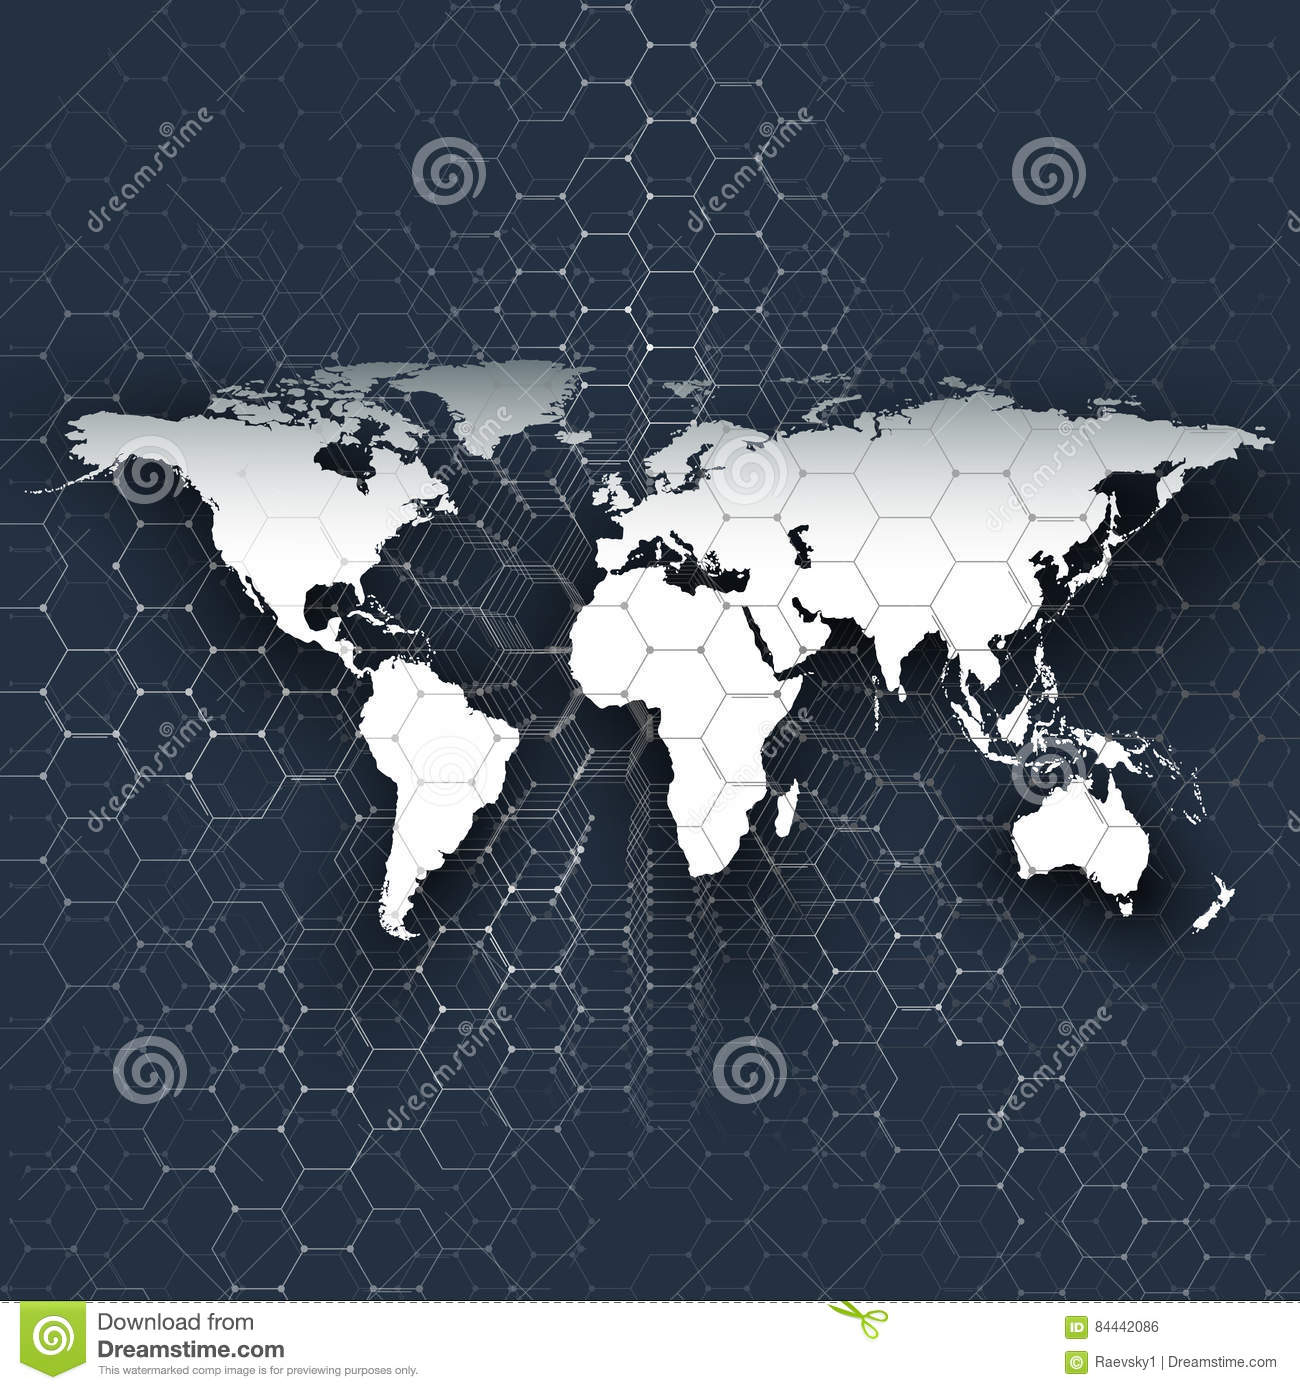 White world map connecting lines and dots on blue color background download comp gumiabroncs Choice Image